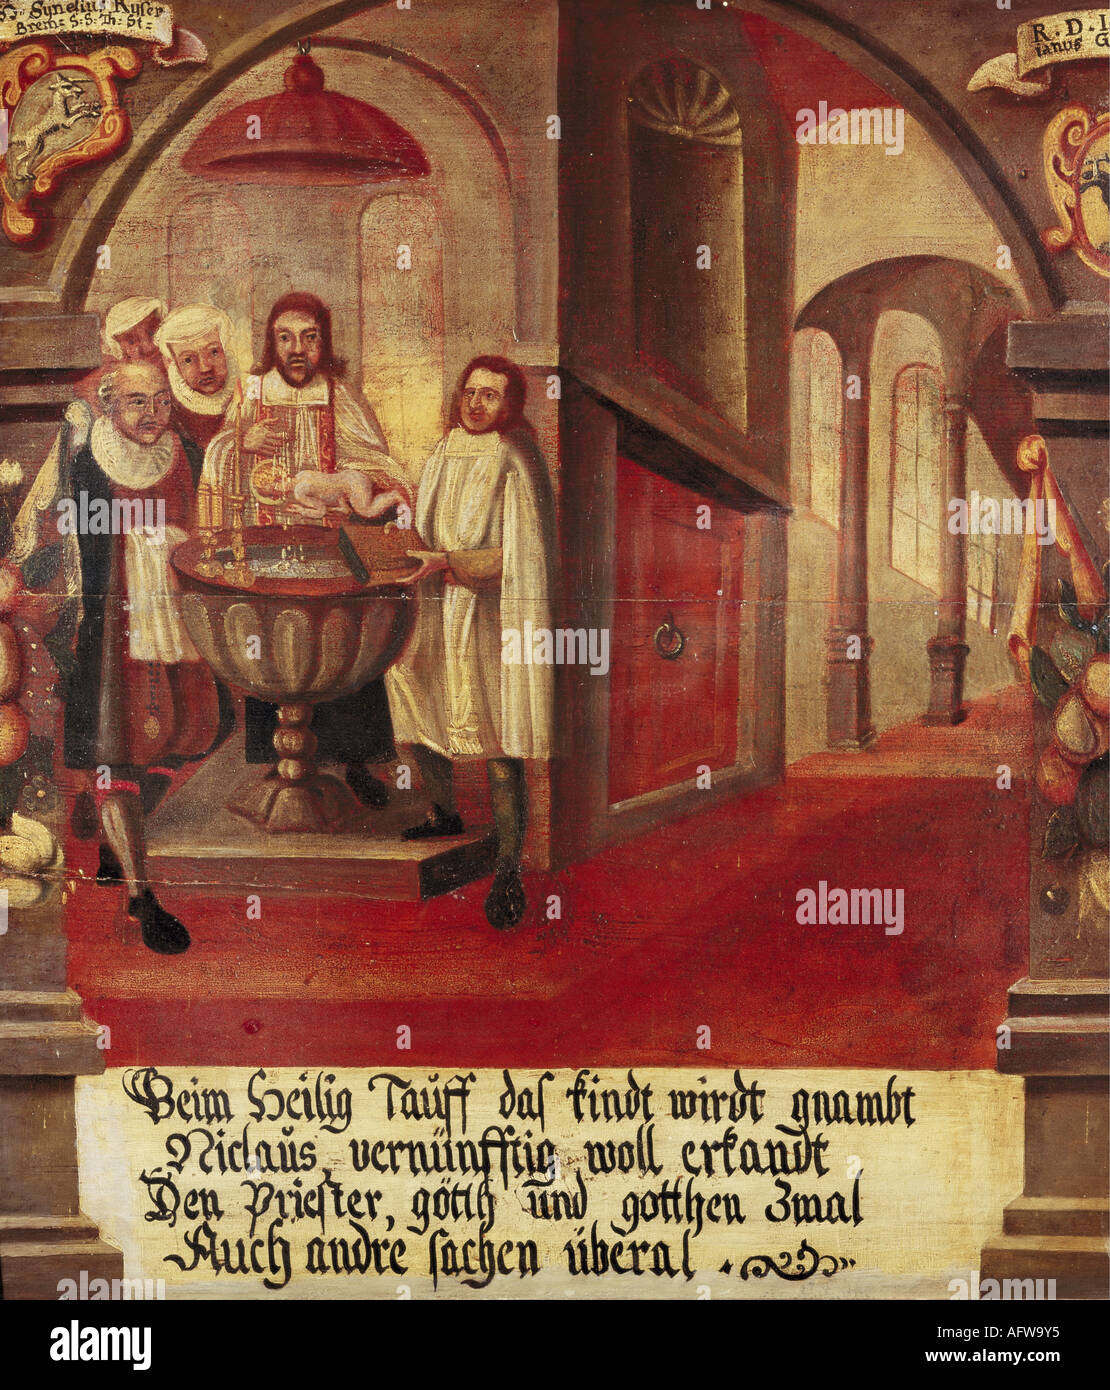 Nicholas of Flue, 1417 - 21.3.1487, Swiss hermit, ascetic, mystic, Saint,  baptism, painting, 1677, Emmaus chapel, Bremgarten, , Additional-Rights-Clearances-NA - Stock Image